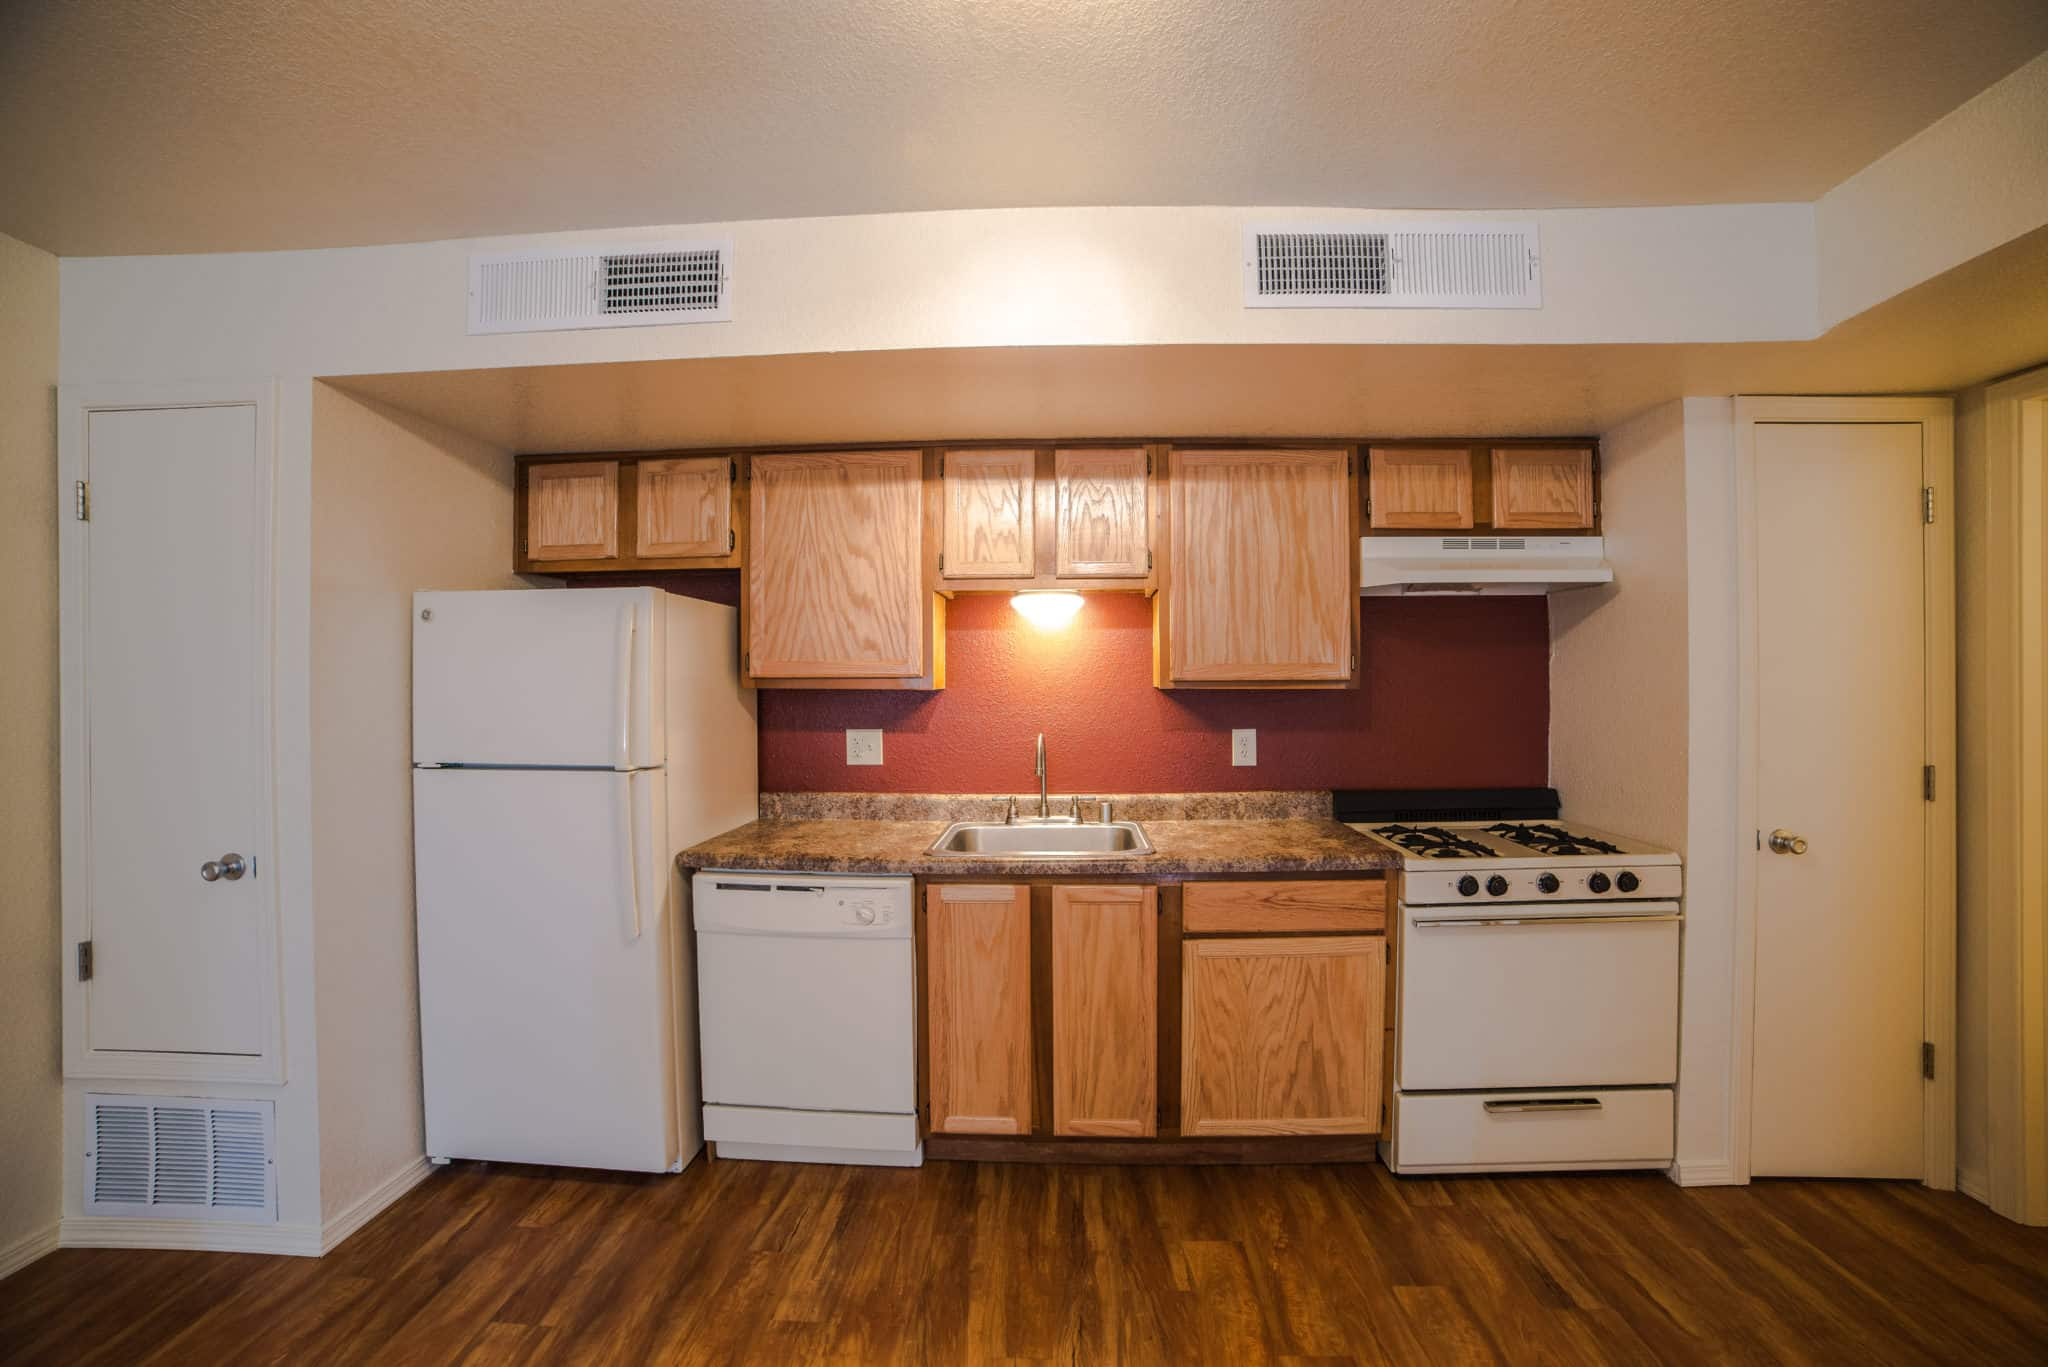 Omni 1 Bedroom Apartments Omni And Centre Square Apartments In Las Cruces Nm